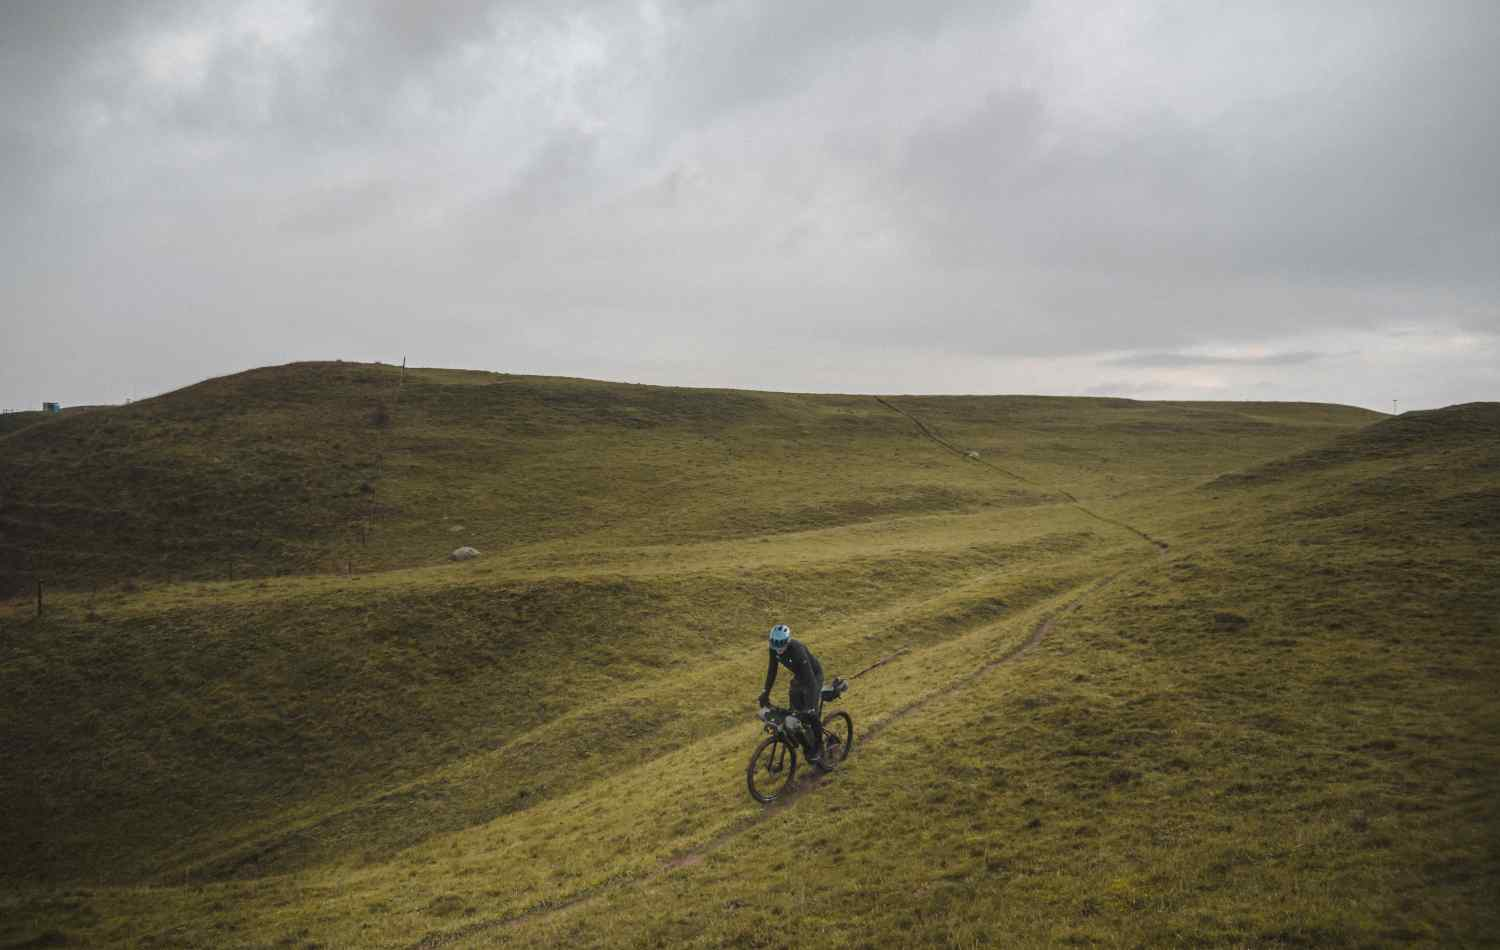 A cyclist rides through the remote backcountry